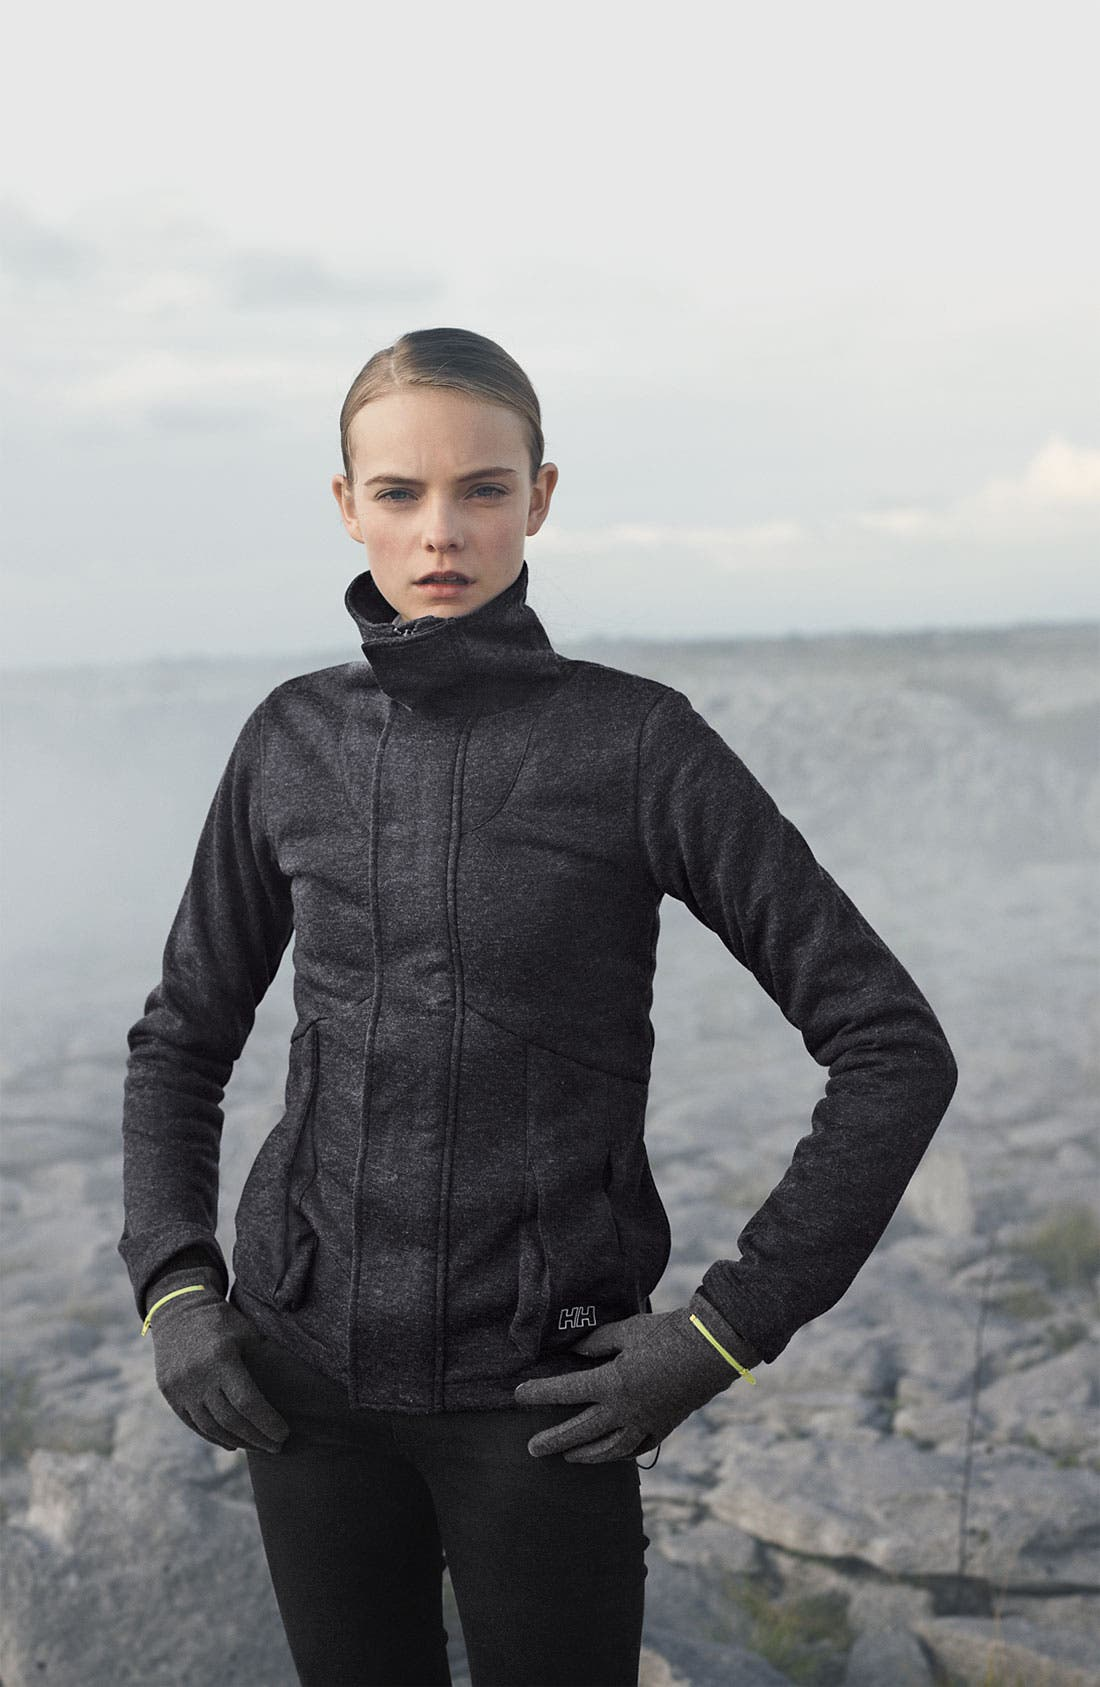 Alternate Image 1 Selected - Helly Hansen Jacket & Paige Jeans